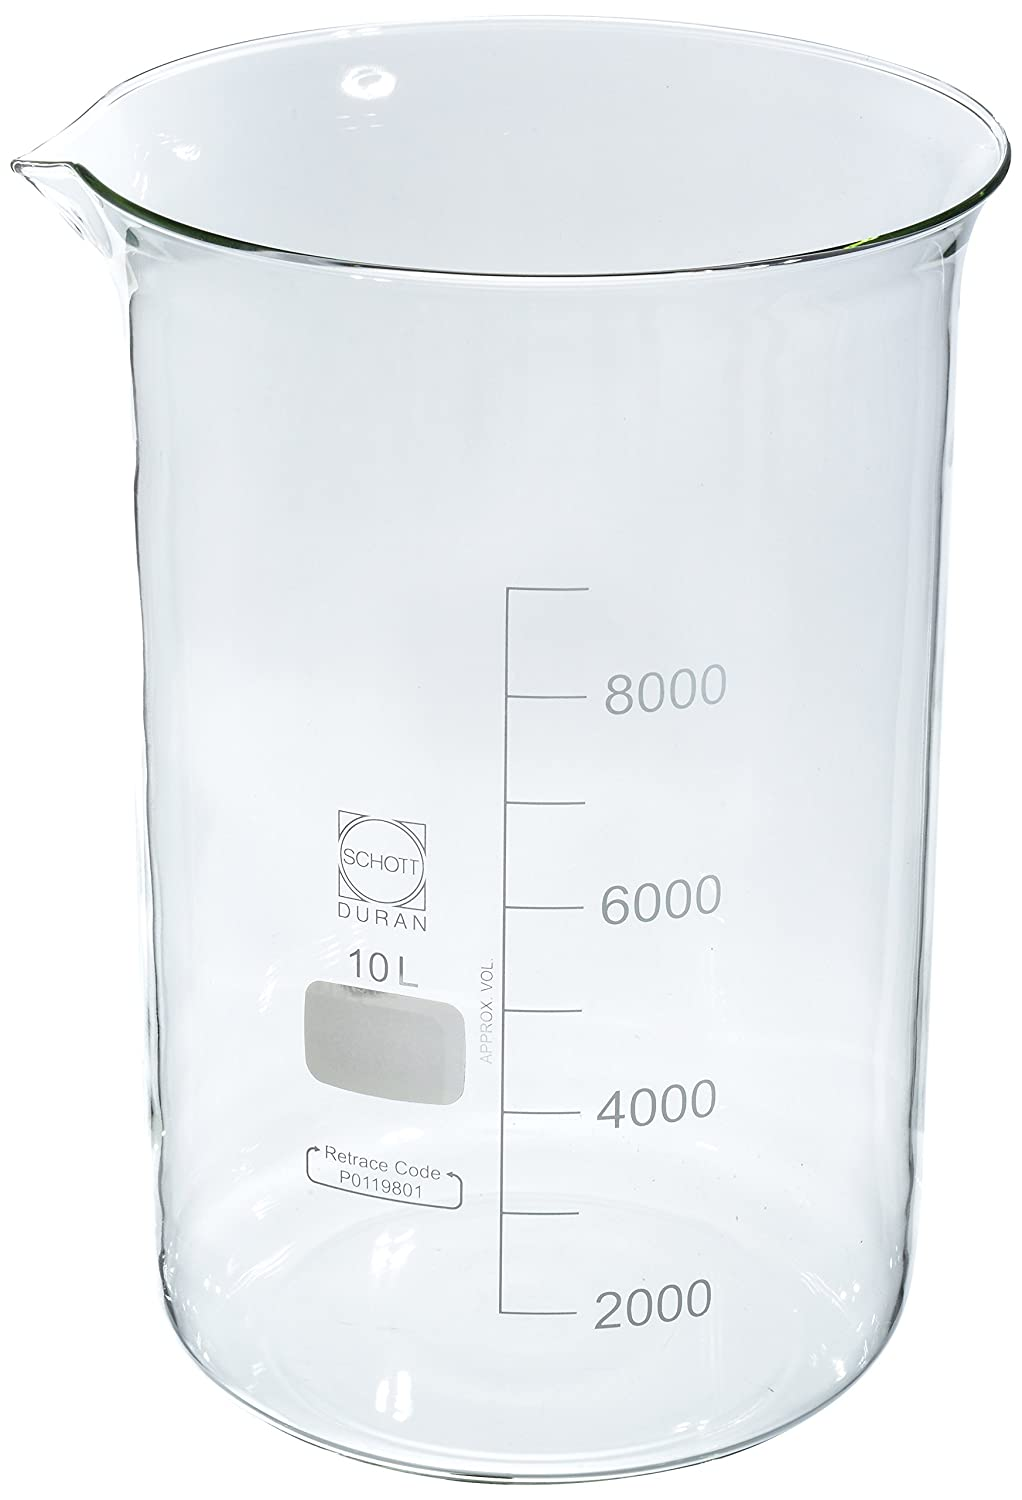 Wilmad-LabGlass LG-3000-104 Ungraduated 1 year warranty Low Form Griffin Beaker Max 51% OFF